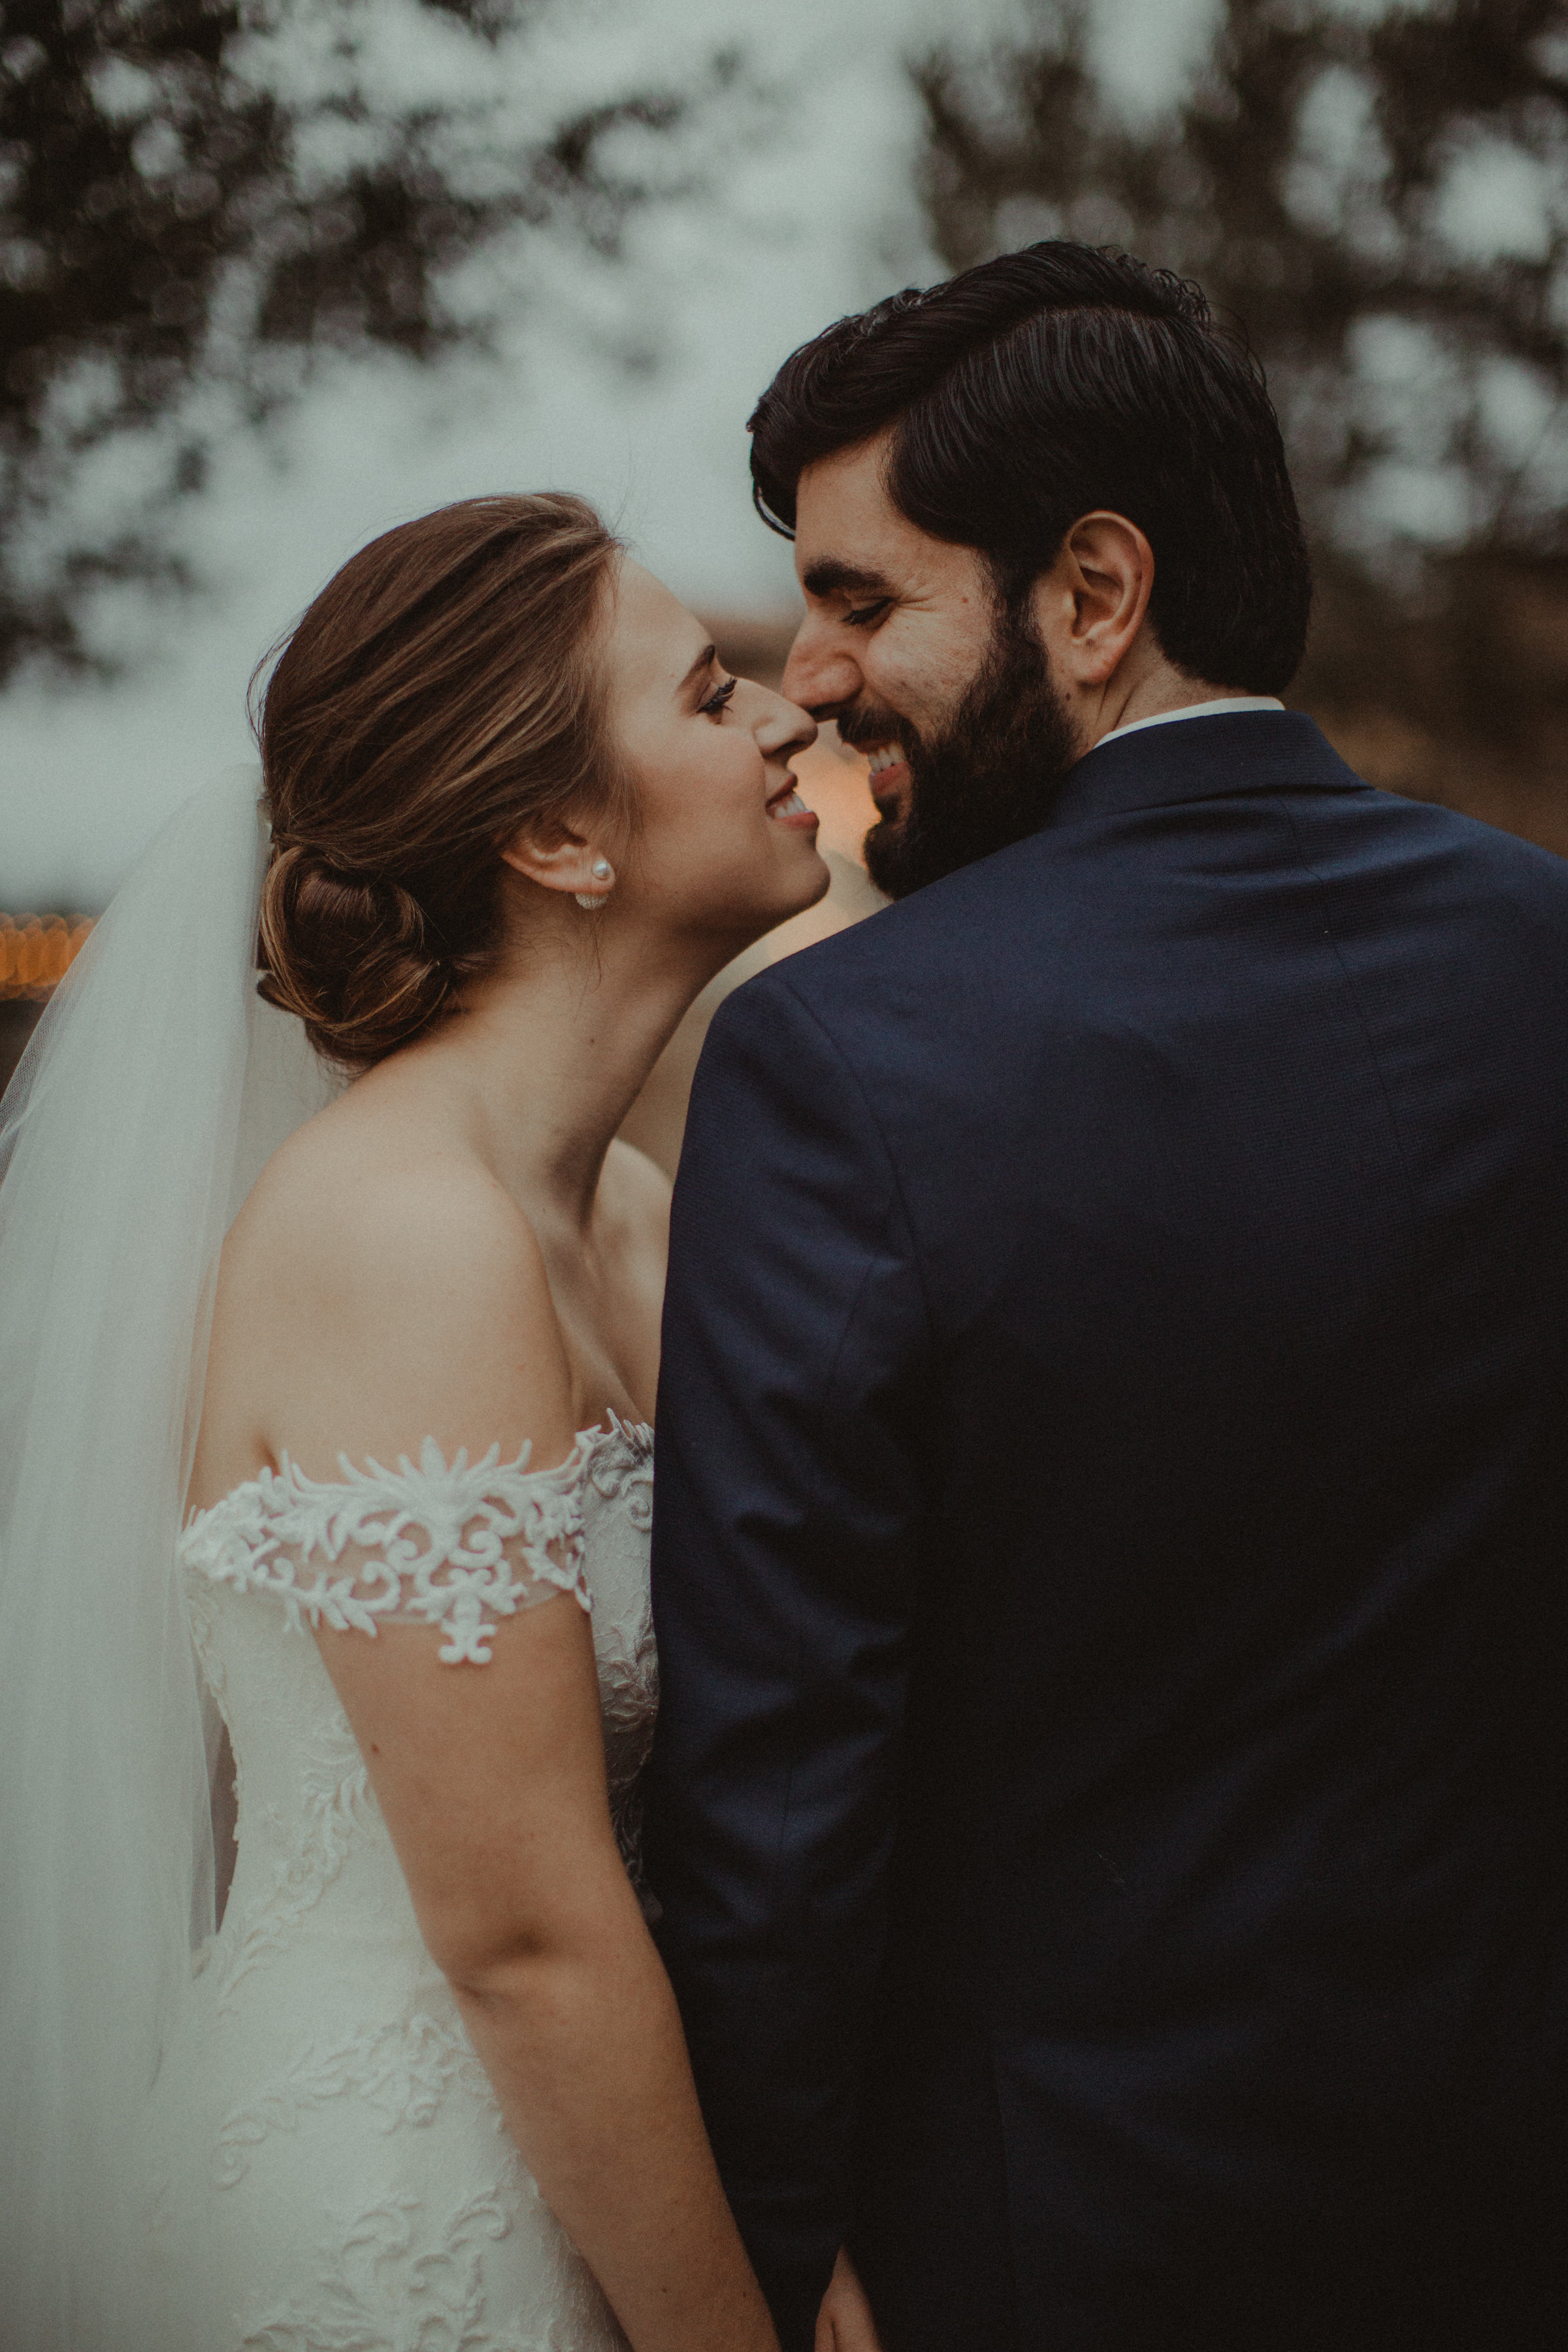 Sweet kisses from the Newlyweds